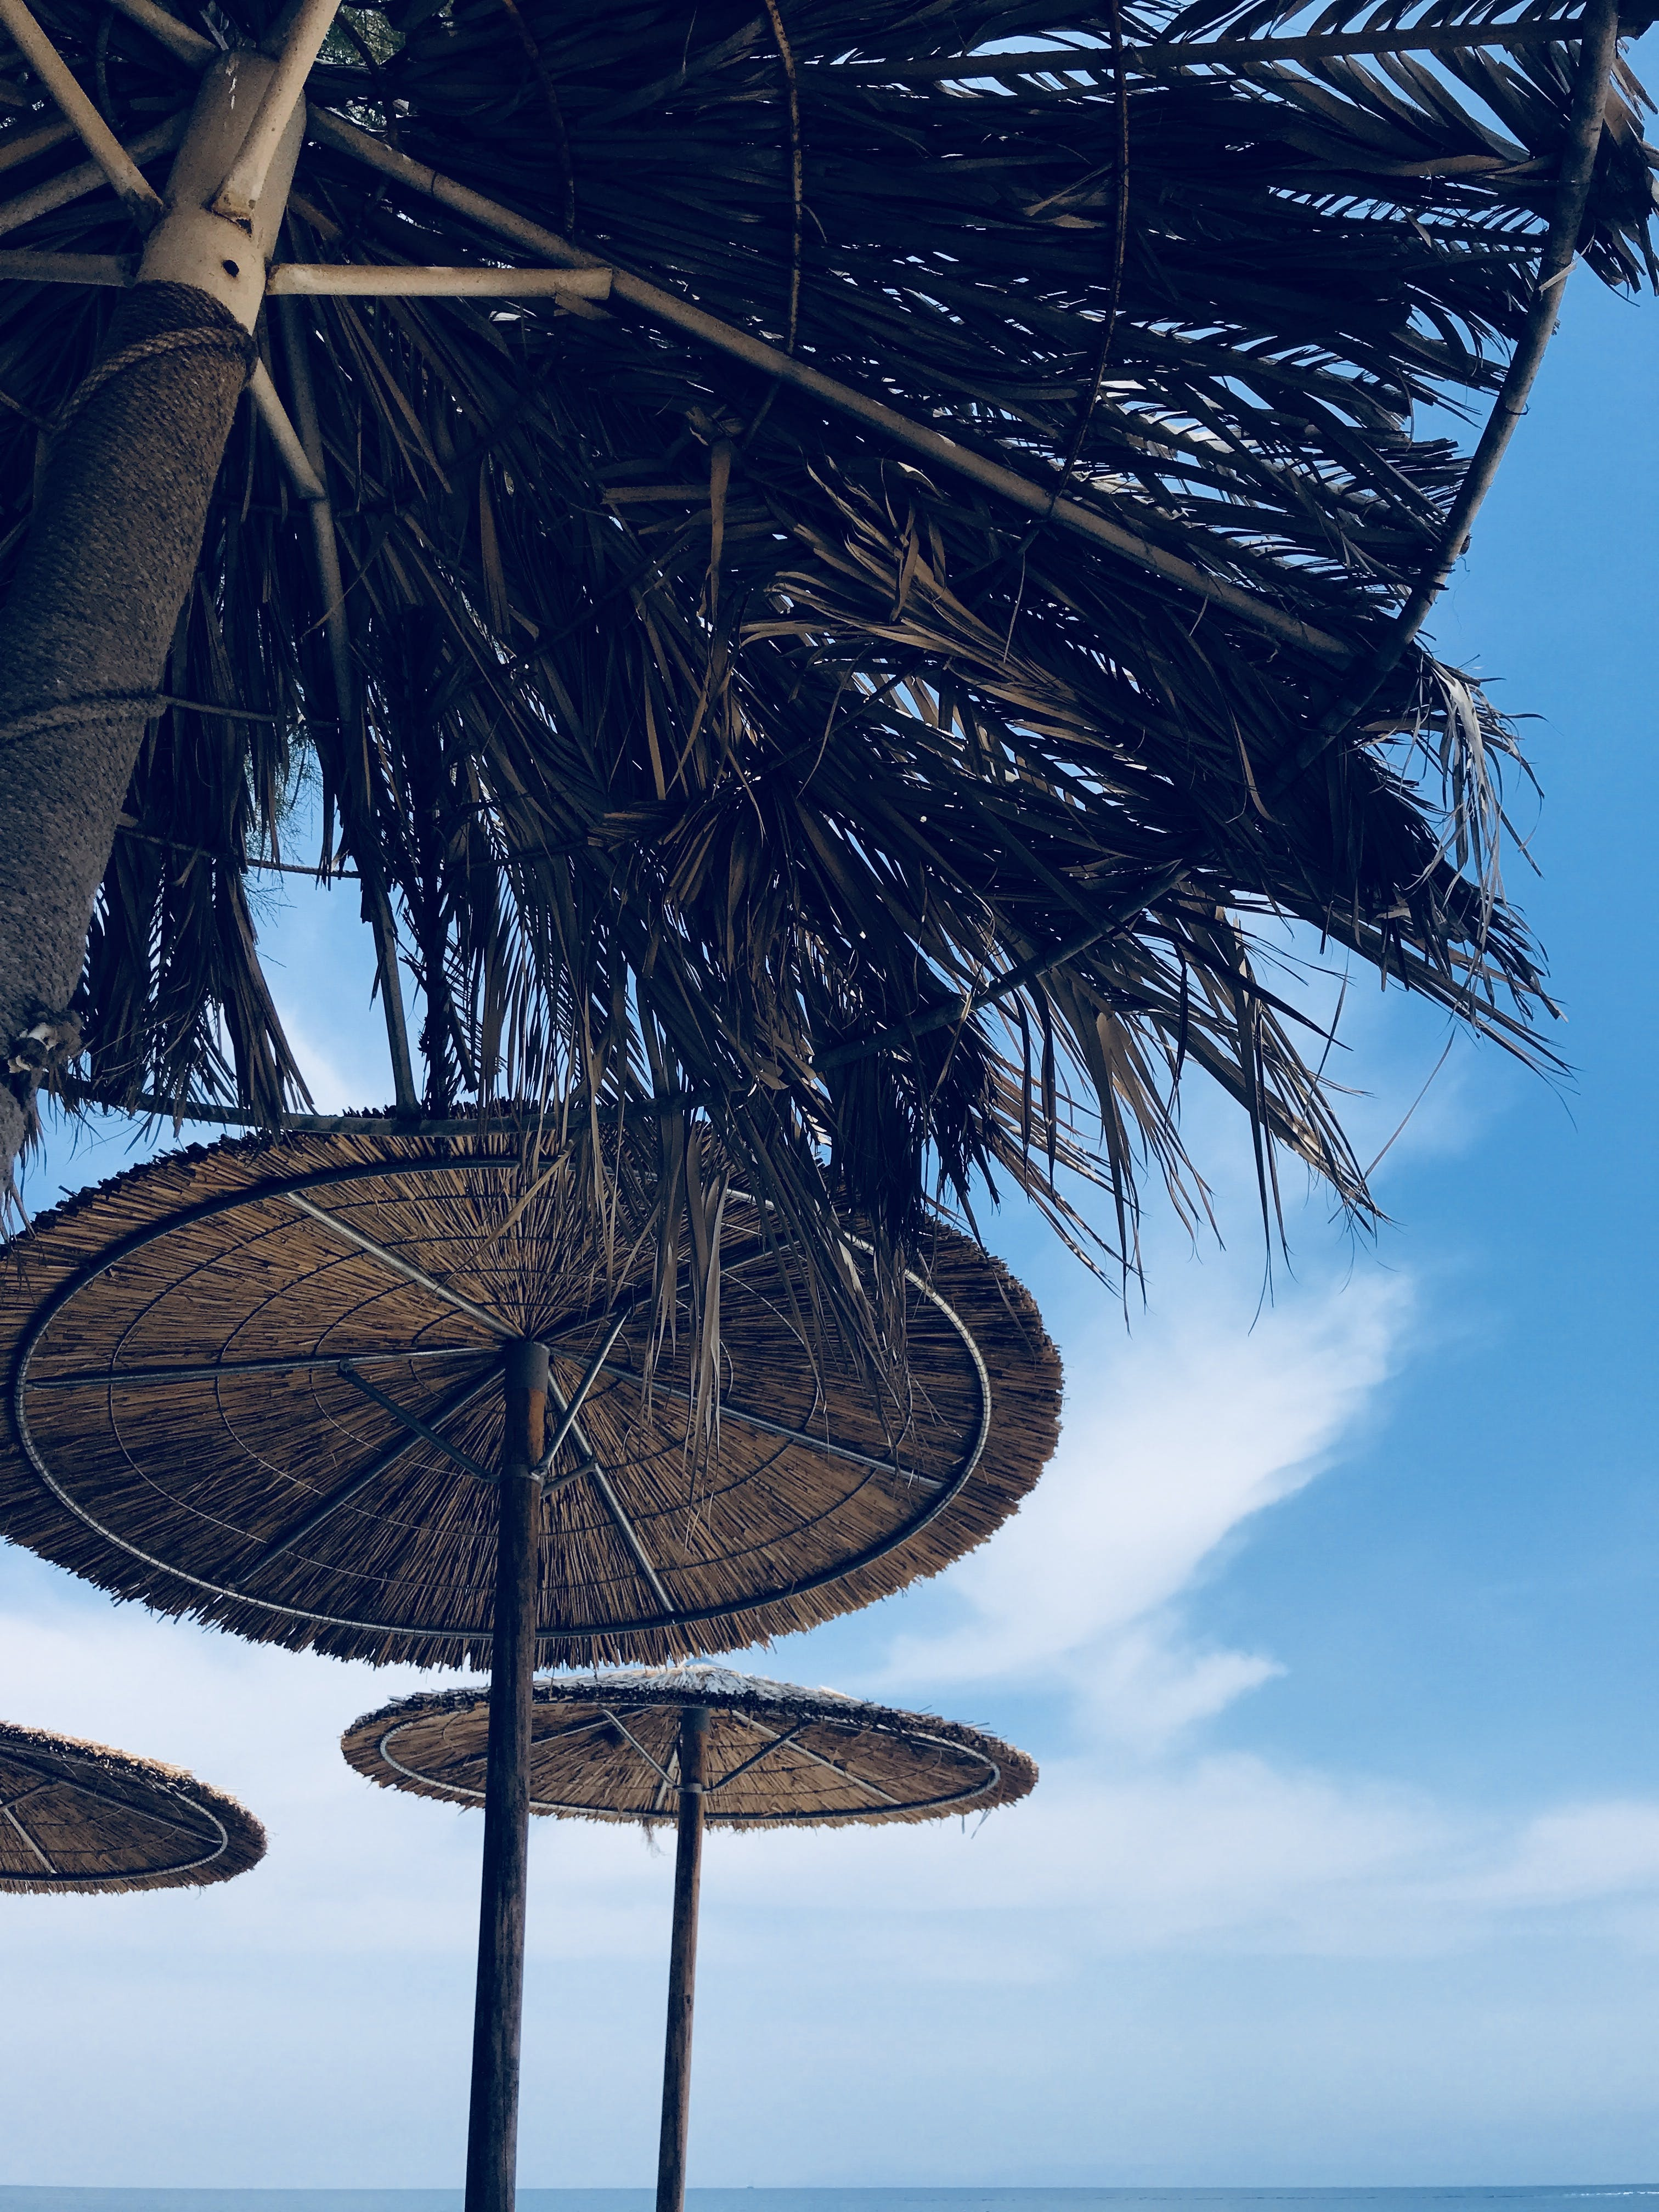 Low Angle Photography of Brown Wicker Umbrella